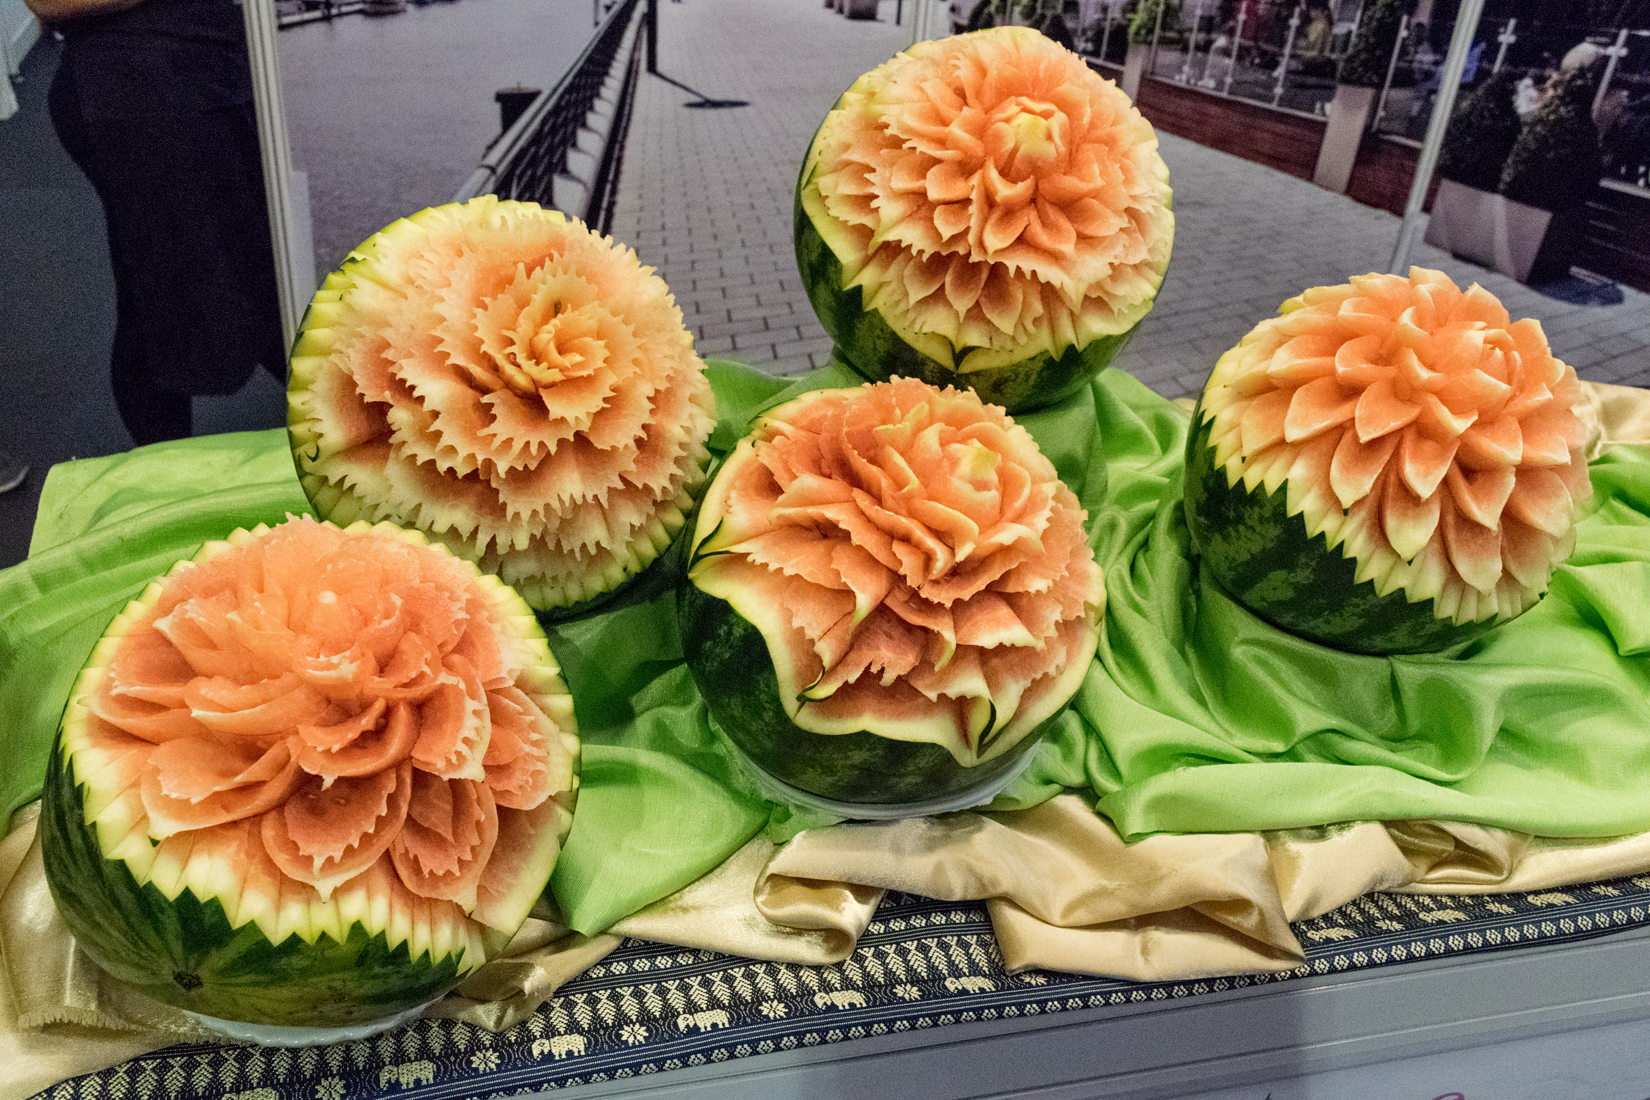 Carved watermelons against a backdrop photograph at the Blue Elephant pop-up Thai restaurant